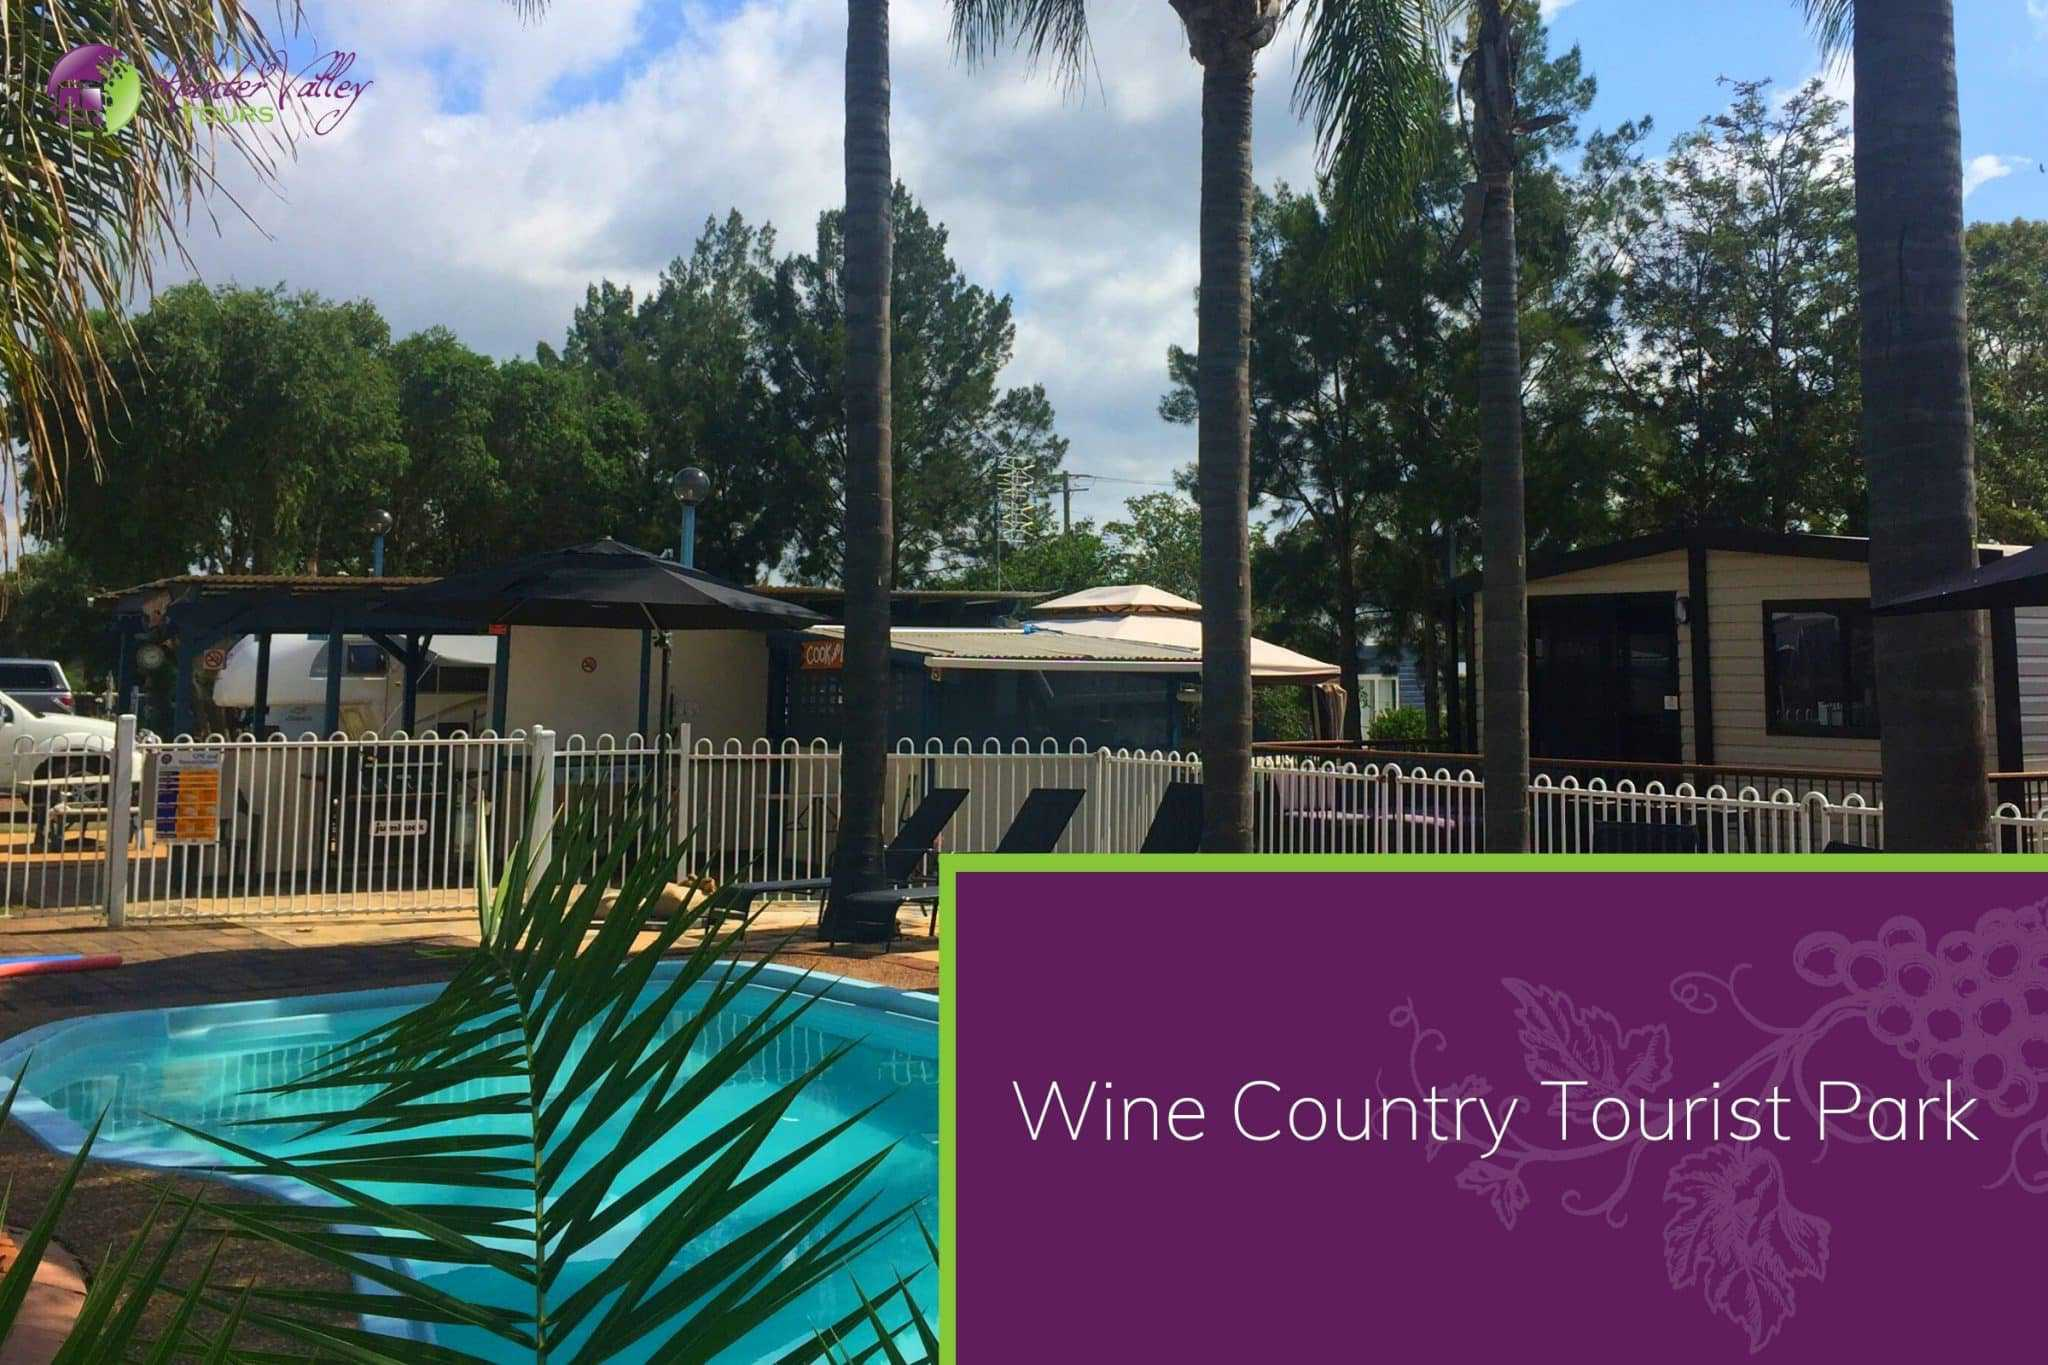 Wine Country Tourist Park